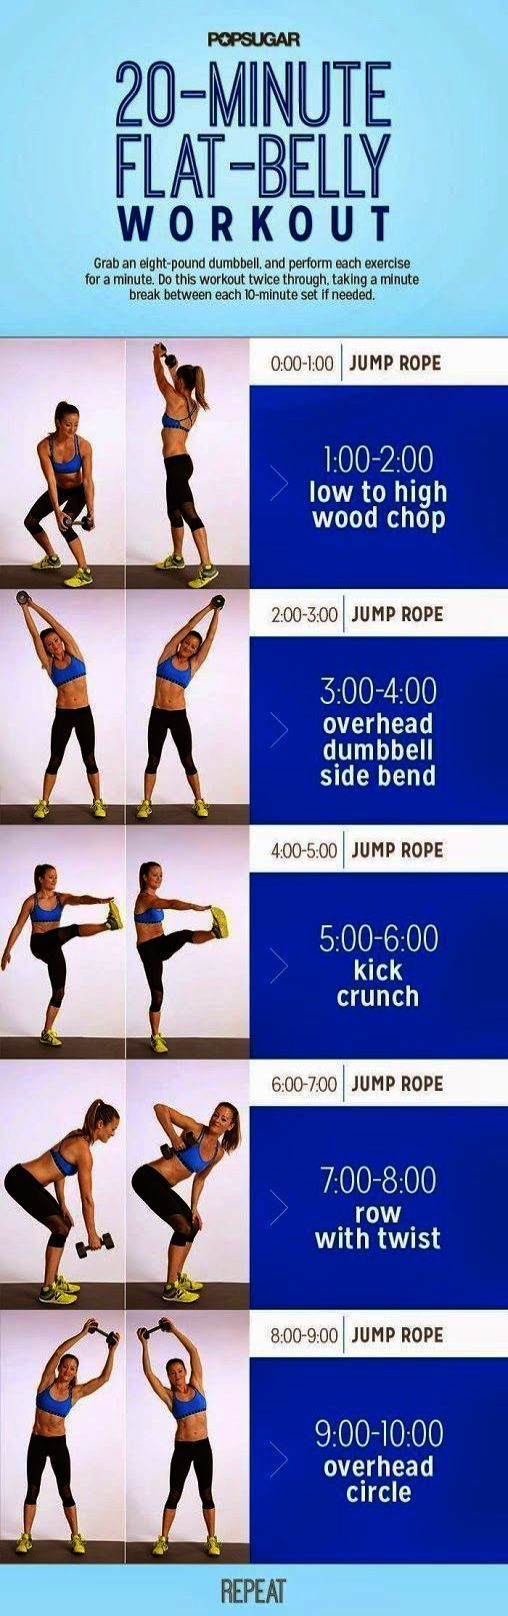 Ab Exercises To Do With Ankle Weights ... Ab Workout For Low Back Pain, Ab Exercises Machine Names #abexercisemachine Ab Exercises To Do With Ankle Weights ... Ab Workout For Low Back Pain, Ab Exercises Machine Names #abexercisemachine Ab Exercises To Do With Ankle Weights ... Ab Workout For Low Back Pain, Ab Exercises Machine Names #abexercisemachine Ab Exercises To Do With Ankle Weights ... Ab Workout For Low Back Pain, Ab Exercises Machine Names #abexercisemachine